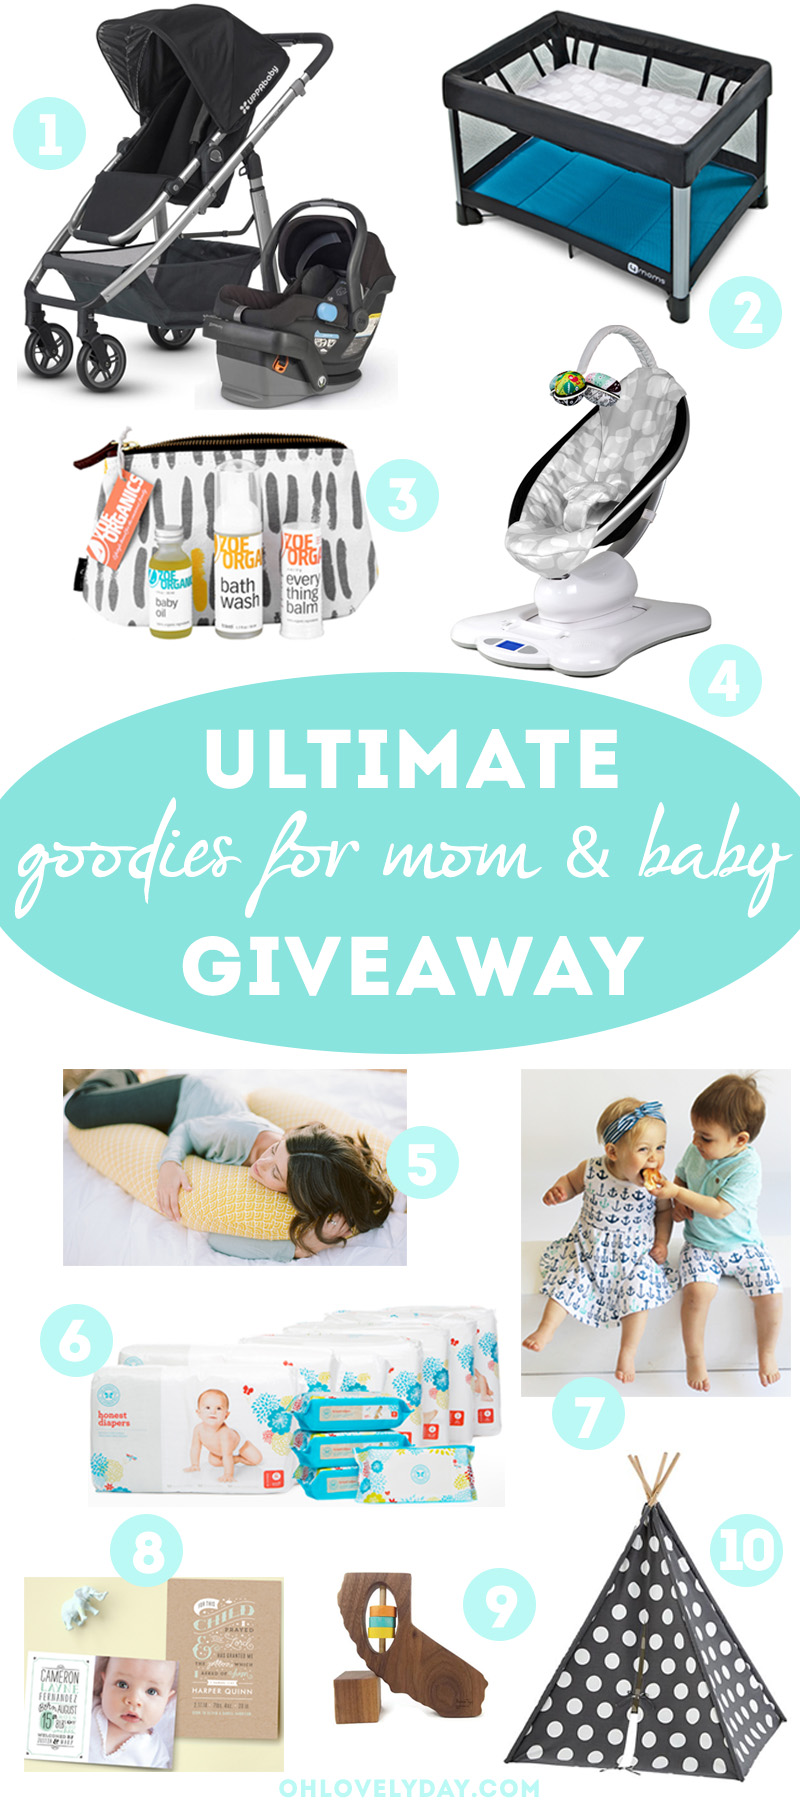 The Ultimate Goodies Giveaway for Mom & Baby | Oh Lovely Day